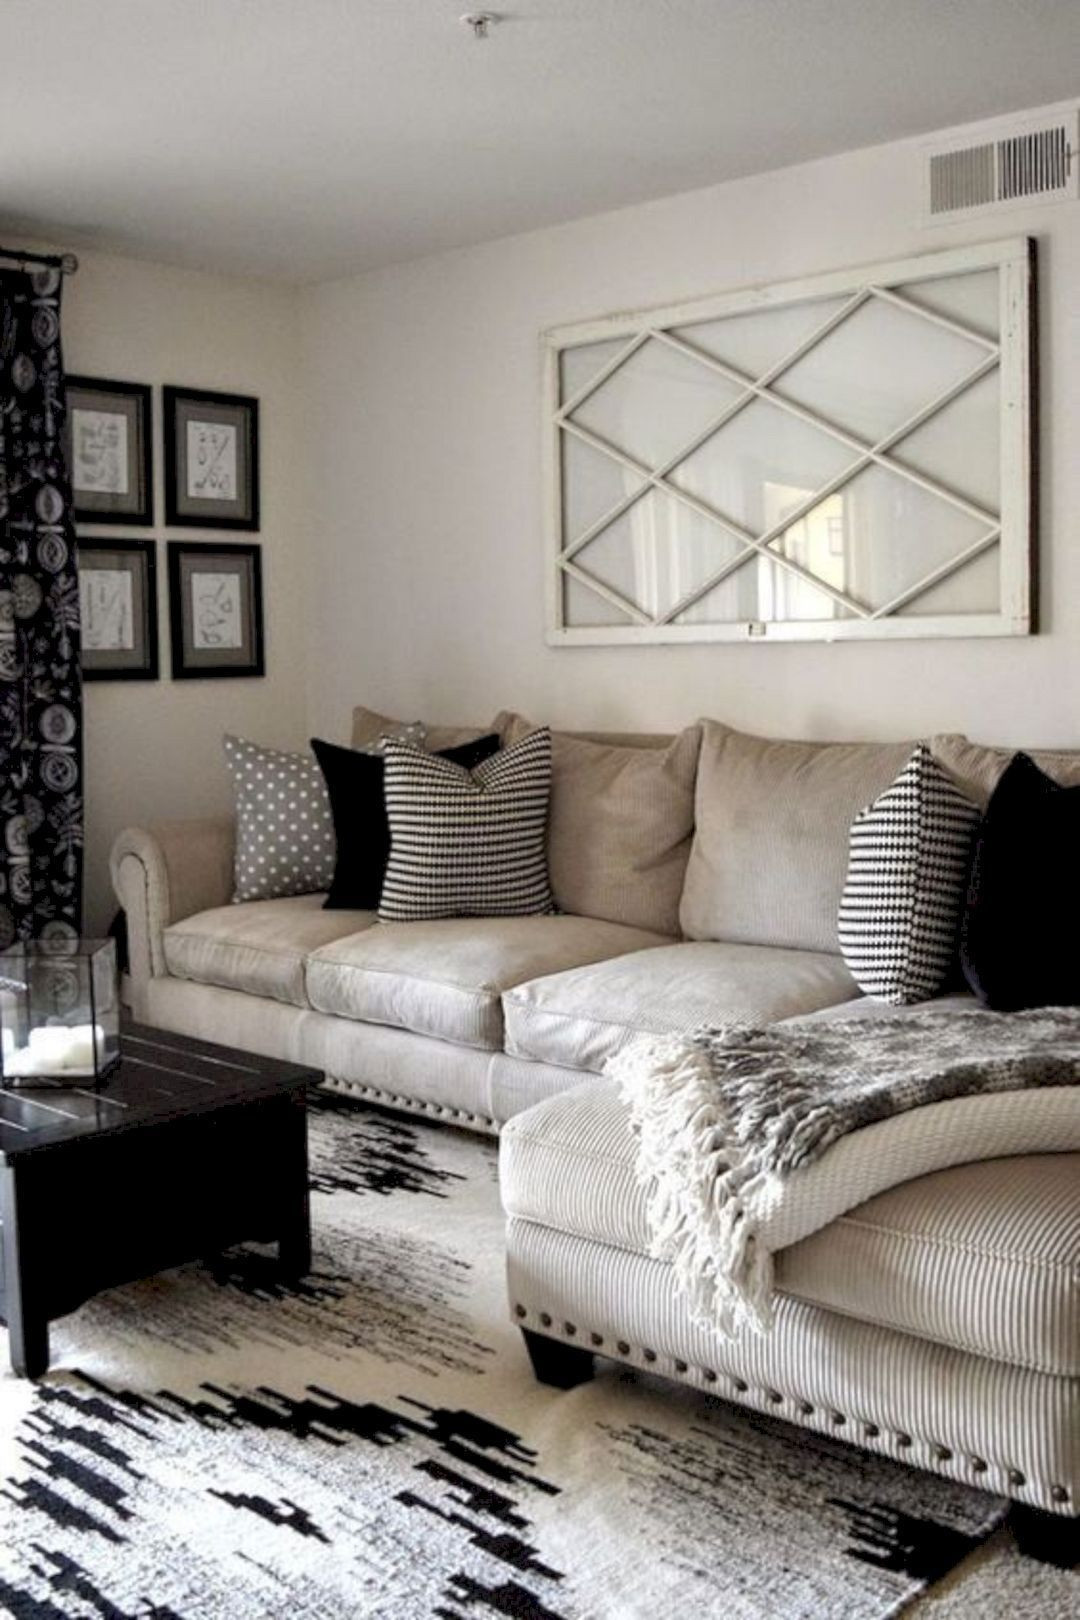 Best ideas about Furniture Ideas For Living Room . Save or Pin 16 Top Small Living Room Furniture Ideas Futurist Now.